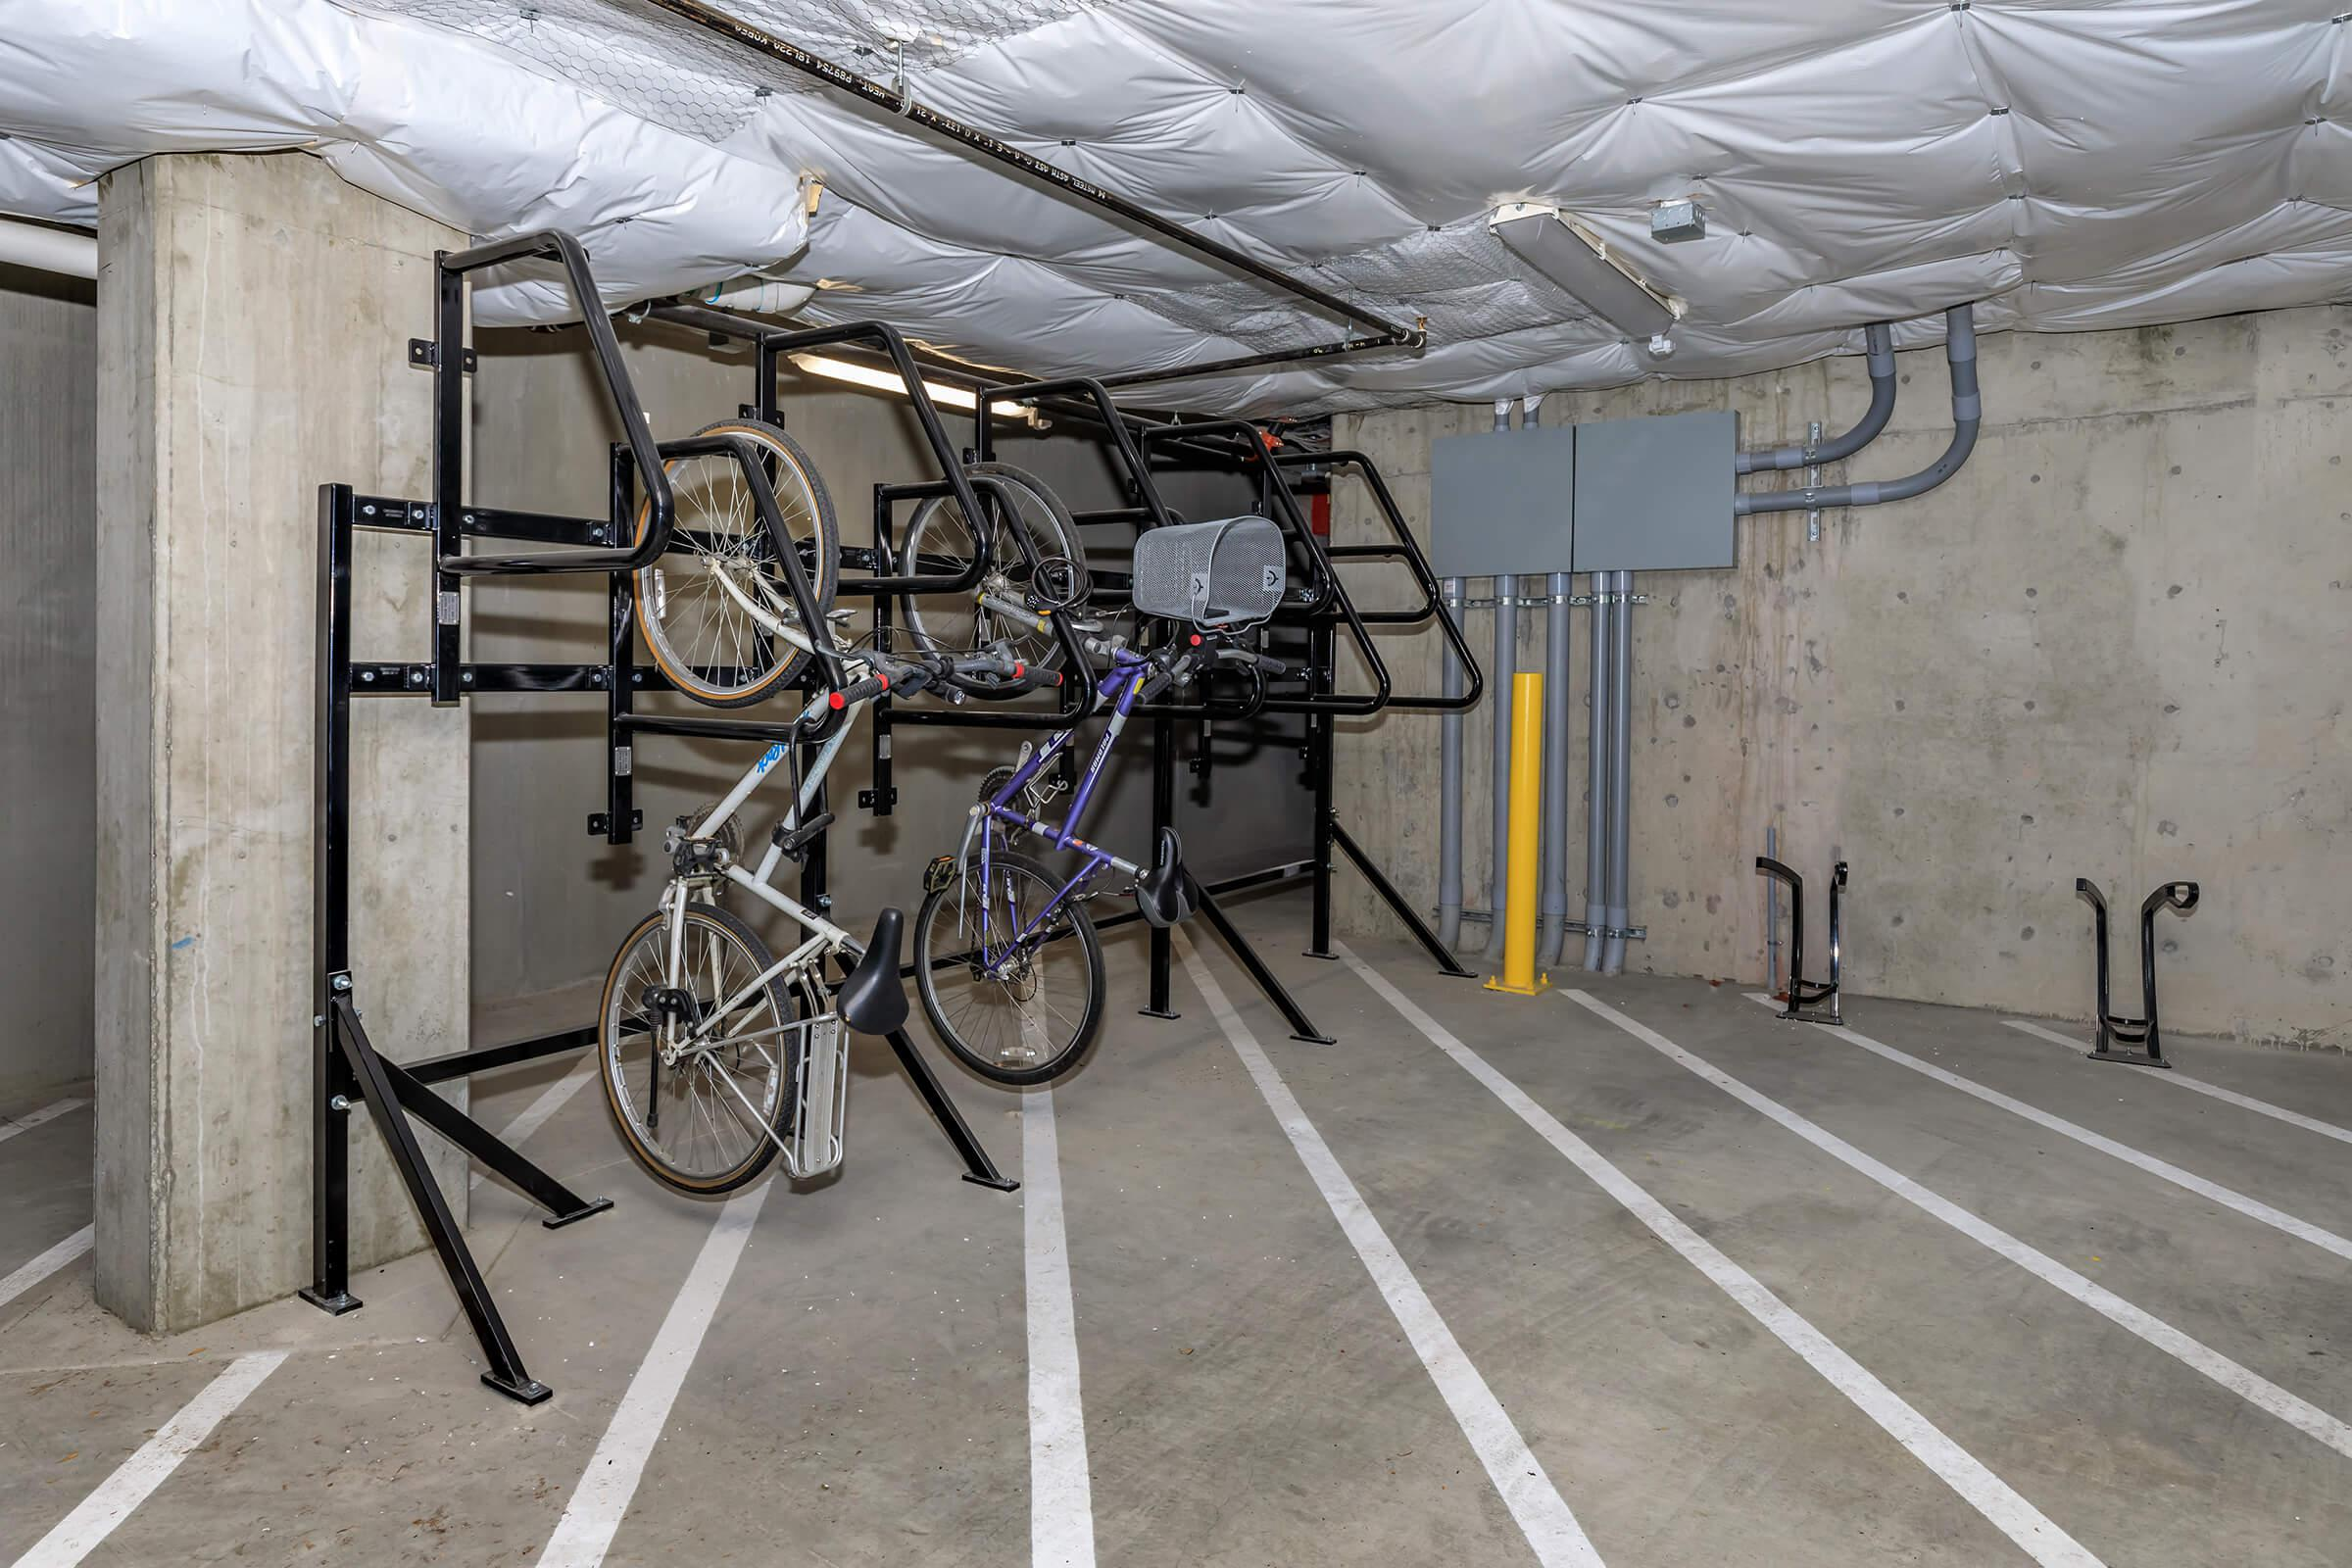 a bicycle parked on the side of a building